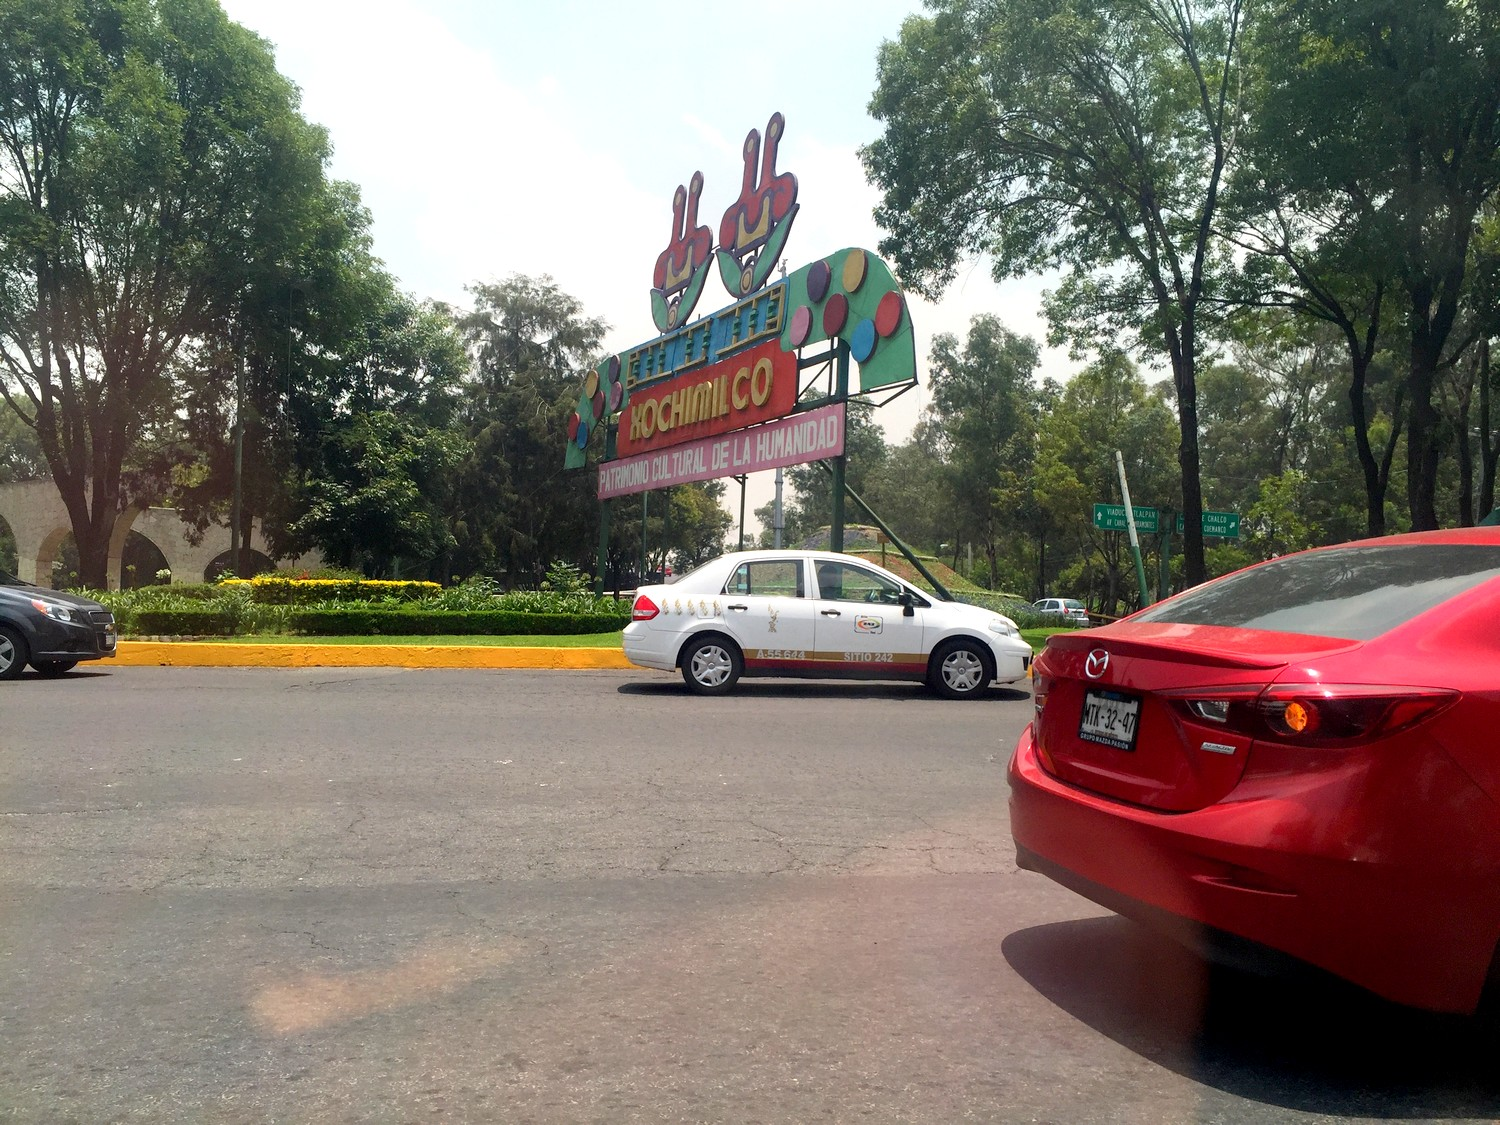 road-trip-mexique-mexico-six-flags-parc-dattraction-blog-voyage-0